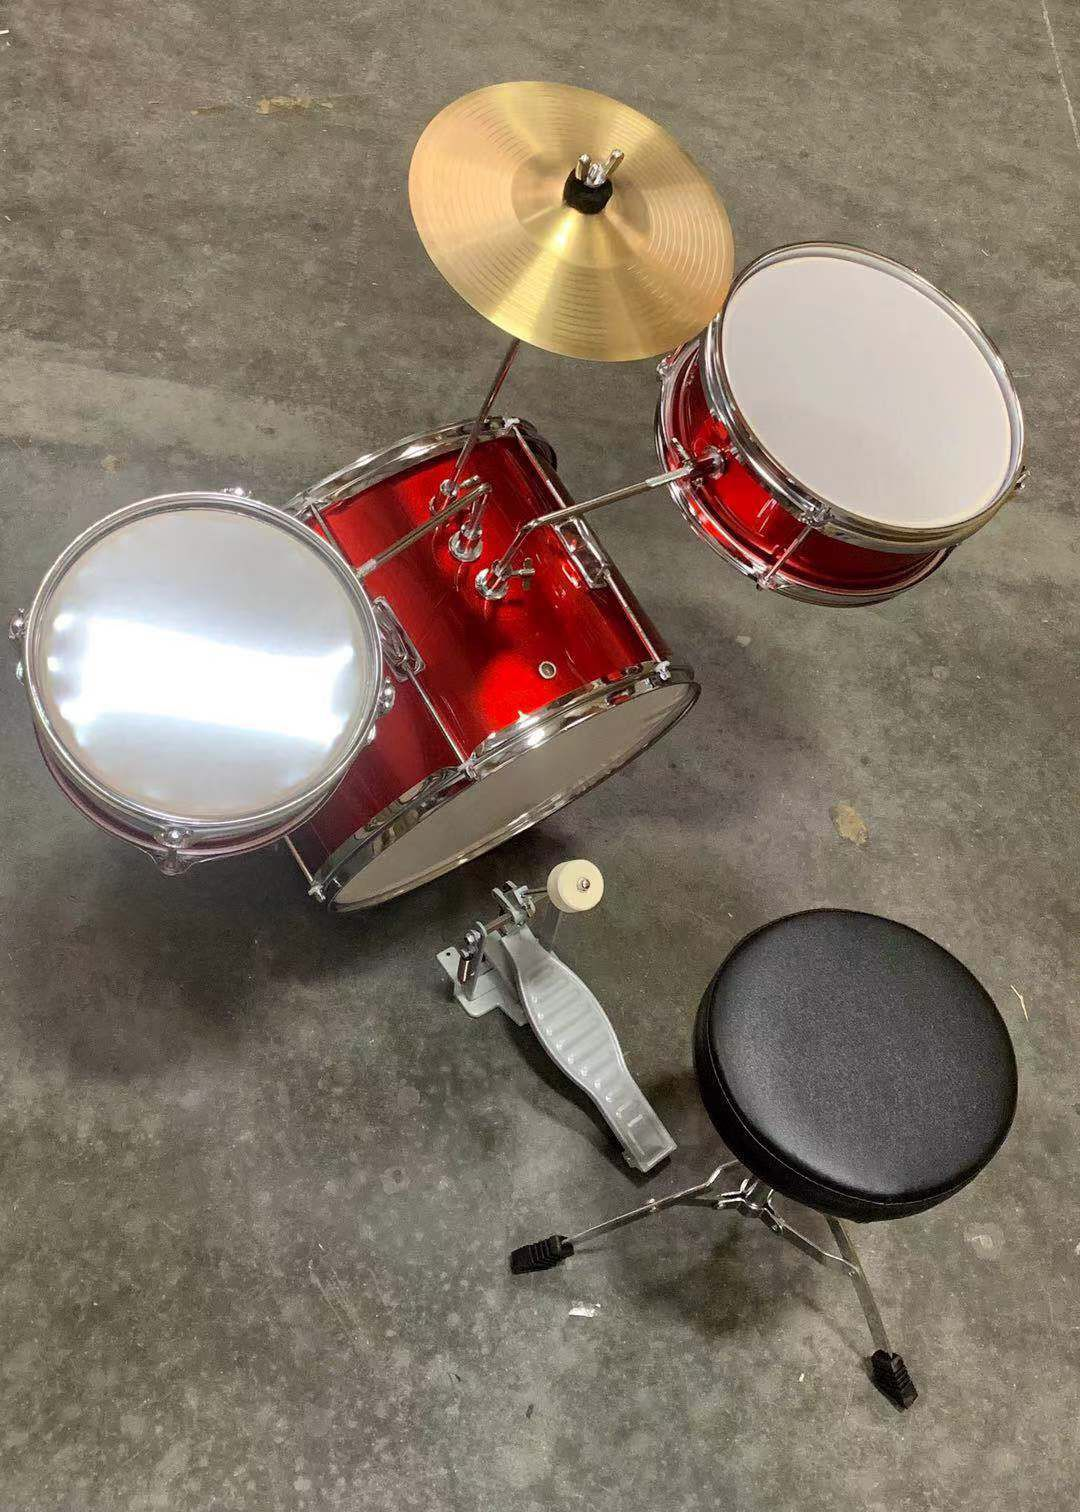 NEW IN BOX Berry 13 Inch Bass Drum Junior Real Drum Set with Throne Cymbal Pedal and Wooden Drumsticks